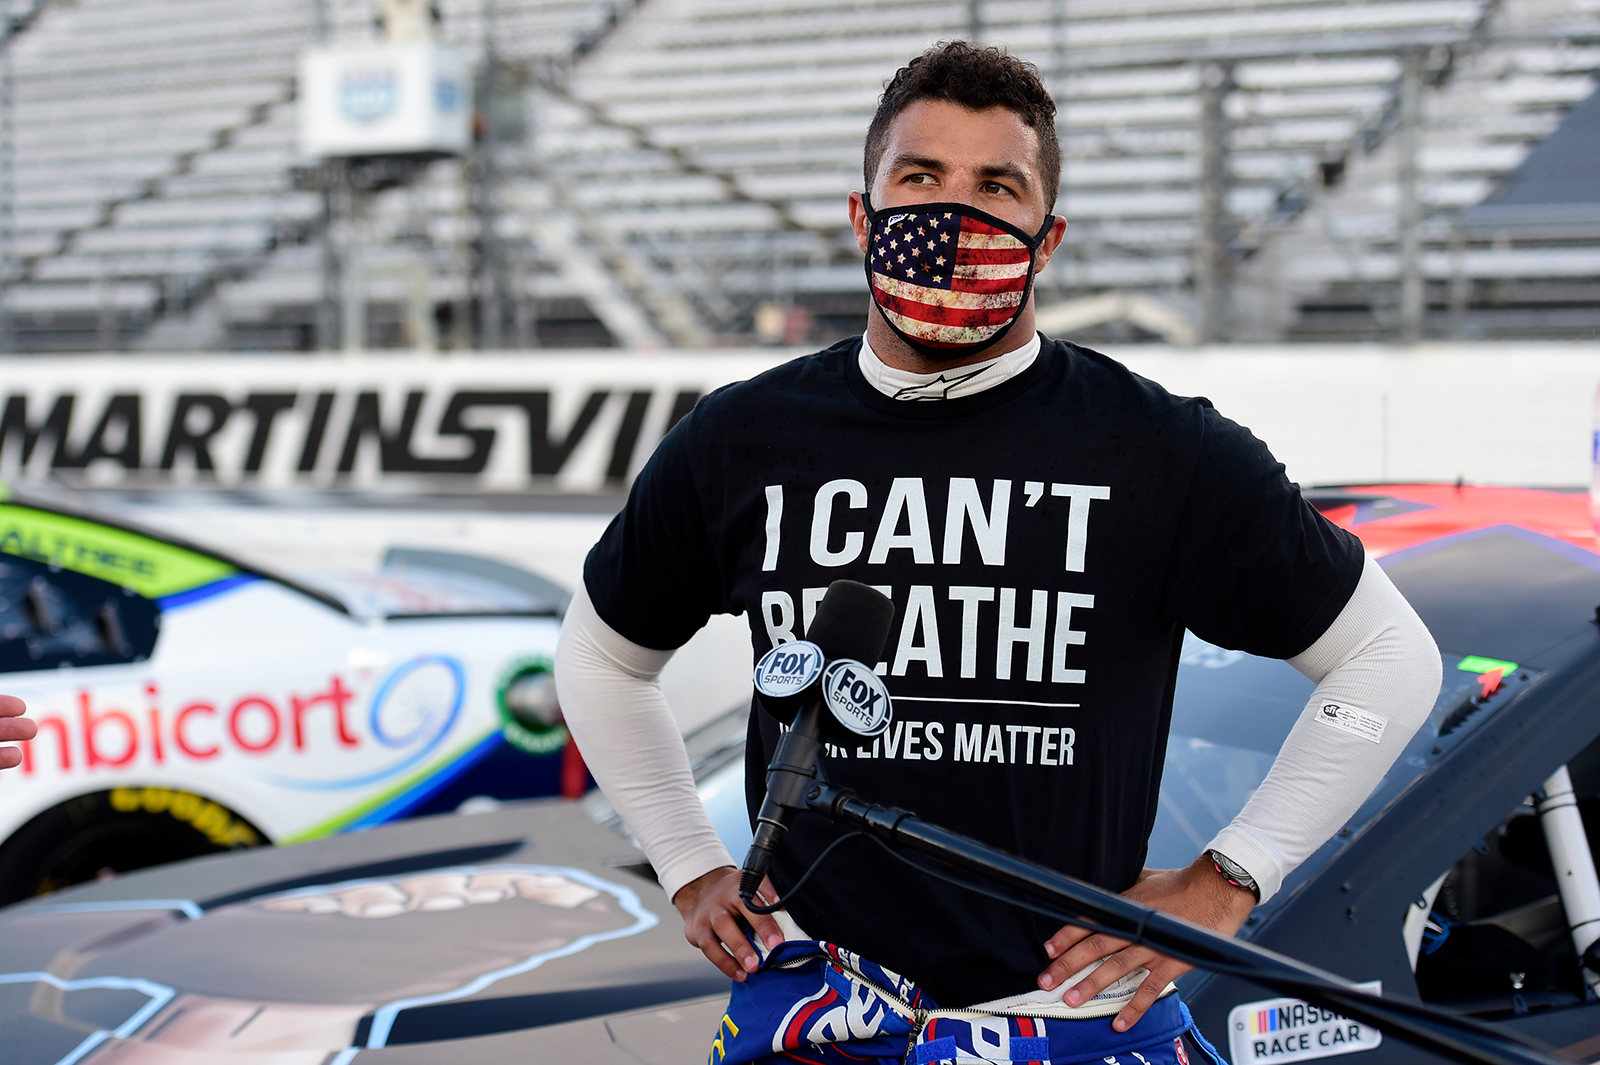 """Bubba Wallace, driver of the #43 Richard Petty Motorsports Chevrolet, wears a """"I Can't Breathee - Black Lives Matter"""" t-shirt under his fire suit in solidarity with protesters around the world taking to the streets after the death of George Floyd on May 25, speaks to the media prior to the NASCAR Cup Series Blue-Emu Maximum Pain Relief 500 at Martinsville Speedway on June 10, 2020 in Martinsville, Virginia. (Jared C. Tilton/Getty Images)"""